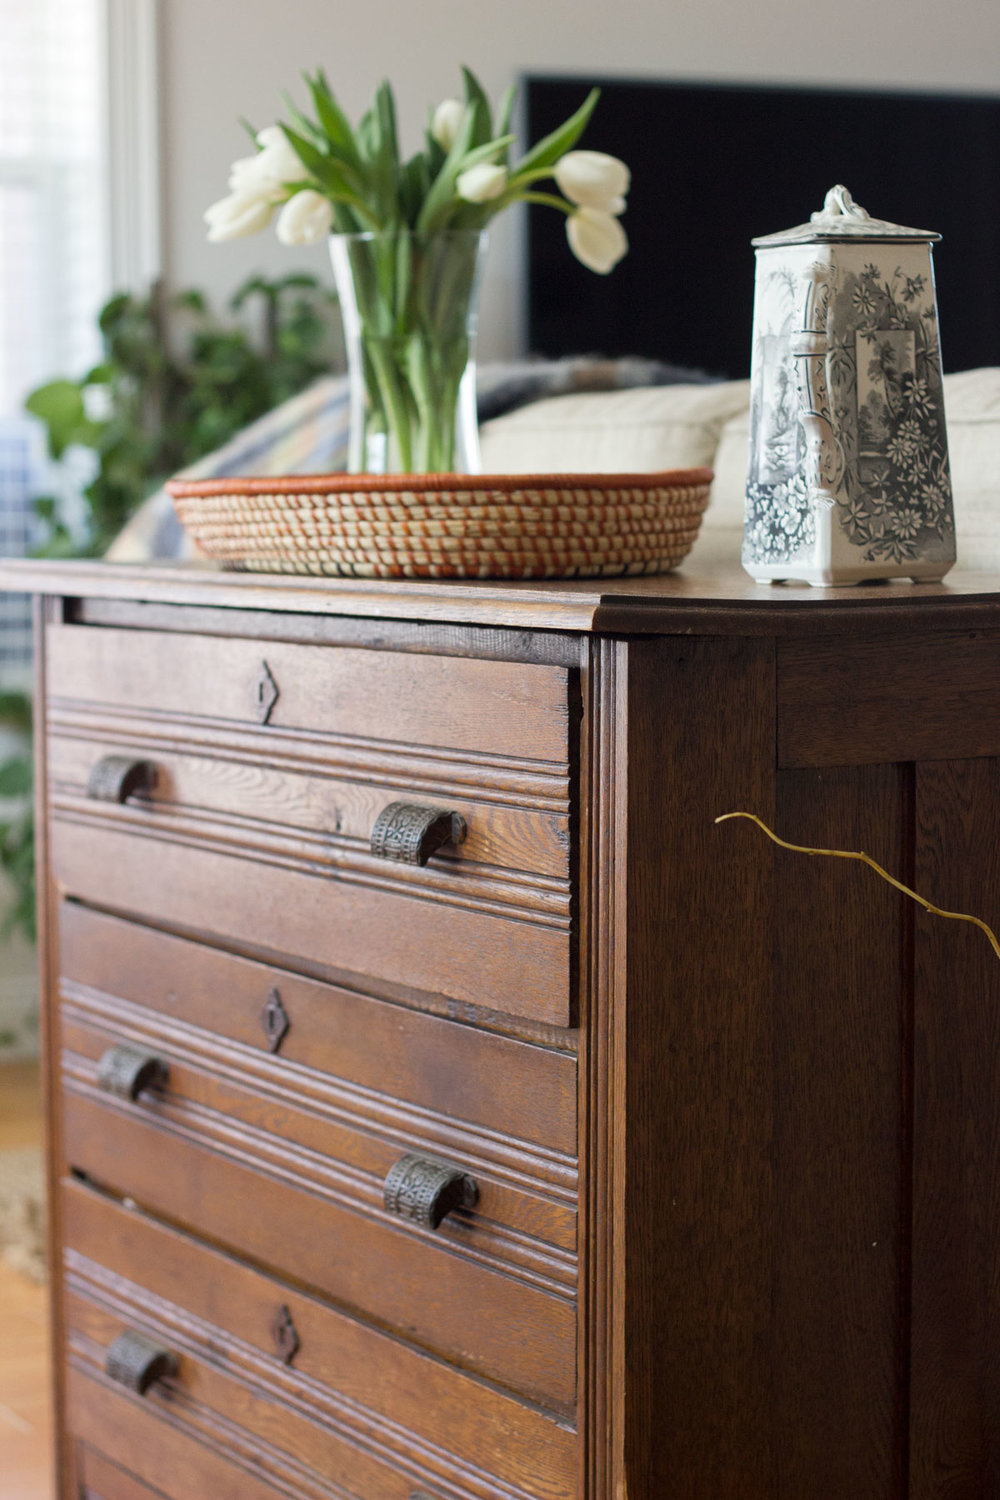 How to Repurpose and Reuse to save money when decorating